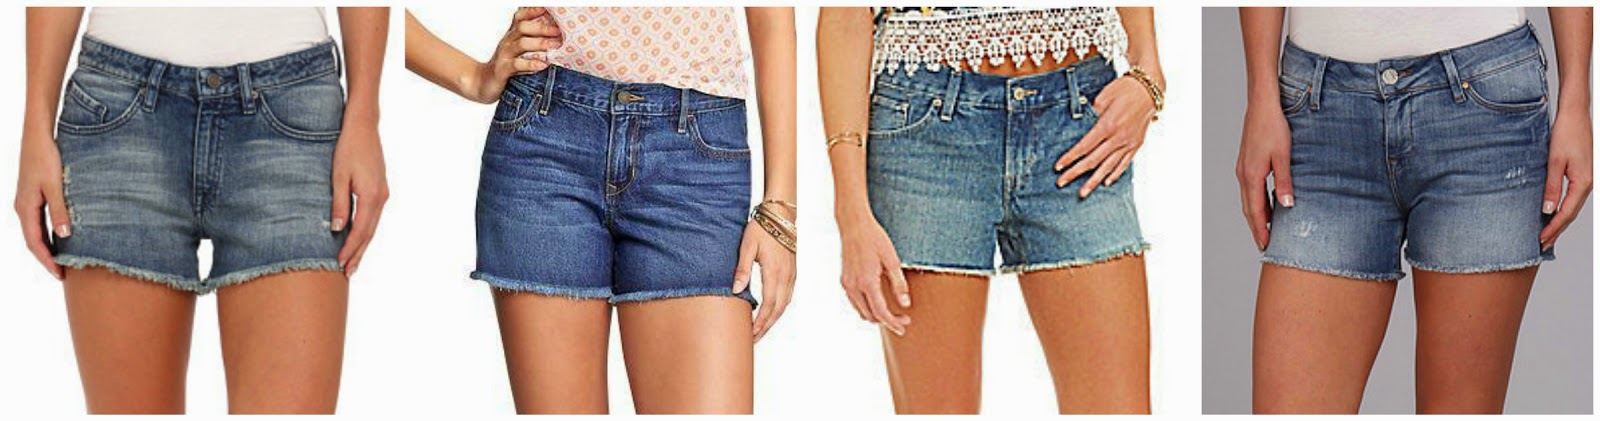 Volcom Stoned Cut Off Short $19.99 (regular $49.50)  Old Navy Denim Cut Off Shorts $22.00 (regular $22.94)  Levi's Cut Off Denim Shortie Short $29.99  Mavi Jeans Emily Cut Off Short $44.99 (regular $88.00)